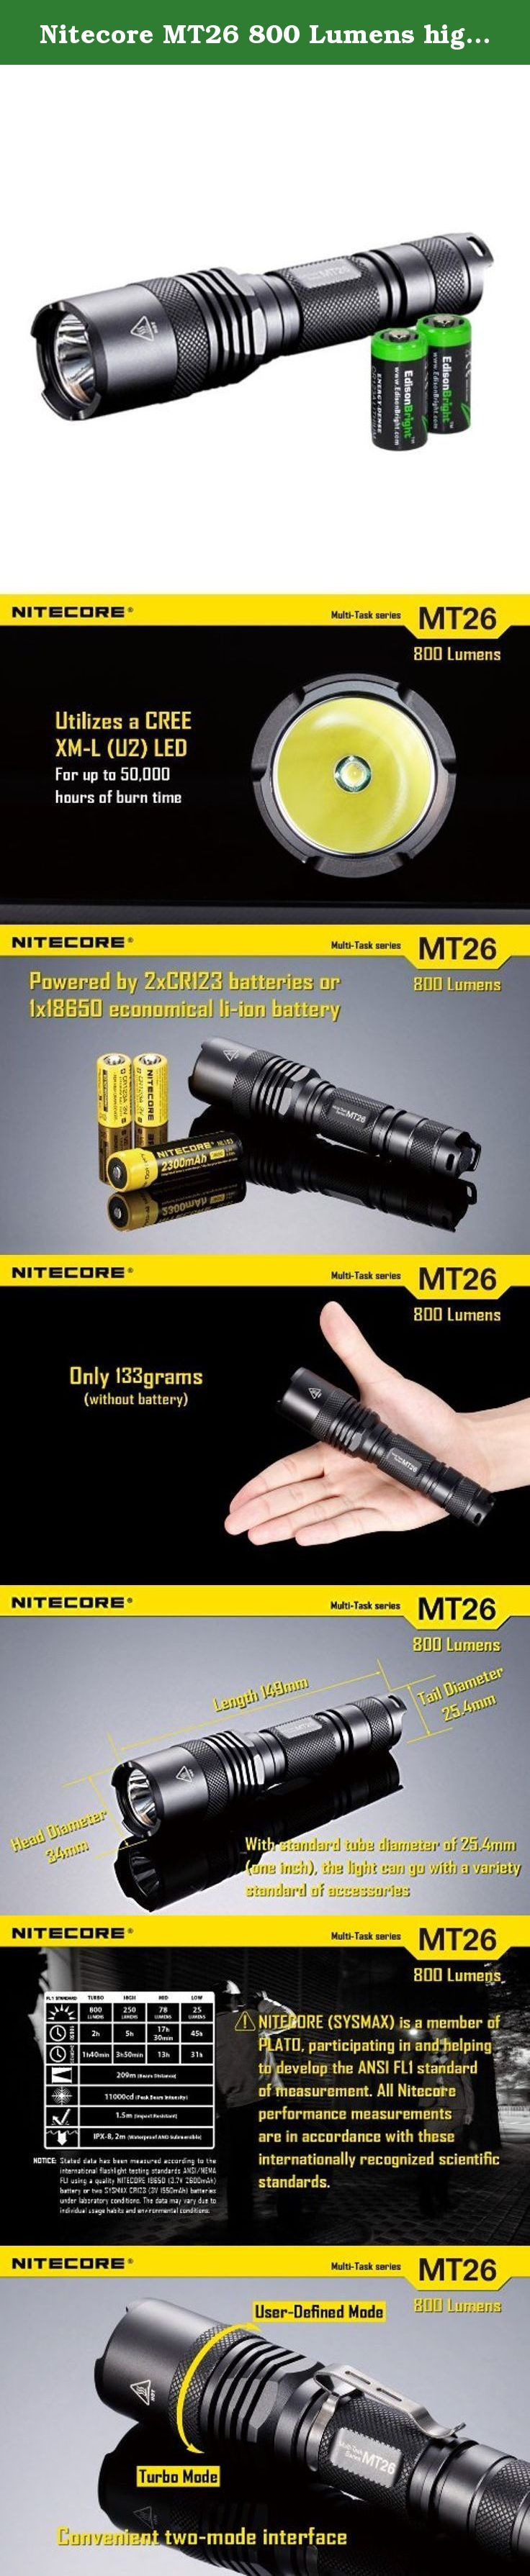 Nitecore MT26 800 Lumens high intensity CREE XM-L U2 LED Flashlight with two EdisonBright brand CR123A Batteries bundle. Features -LED Premium CREE XM-L U2 LED -Maximum output of up to 800 lumens -High efficiency current circuit board -Two rapid switching modes suit various user requirements. -User-defined mode allows for customized brightness levels and a multitude of functions -Intelligent memory functions -Anti-rolling design -Reverse polarity protection -Broad voltage drive circuit...